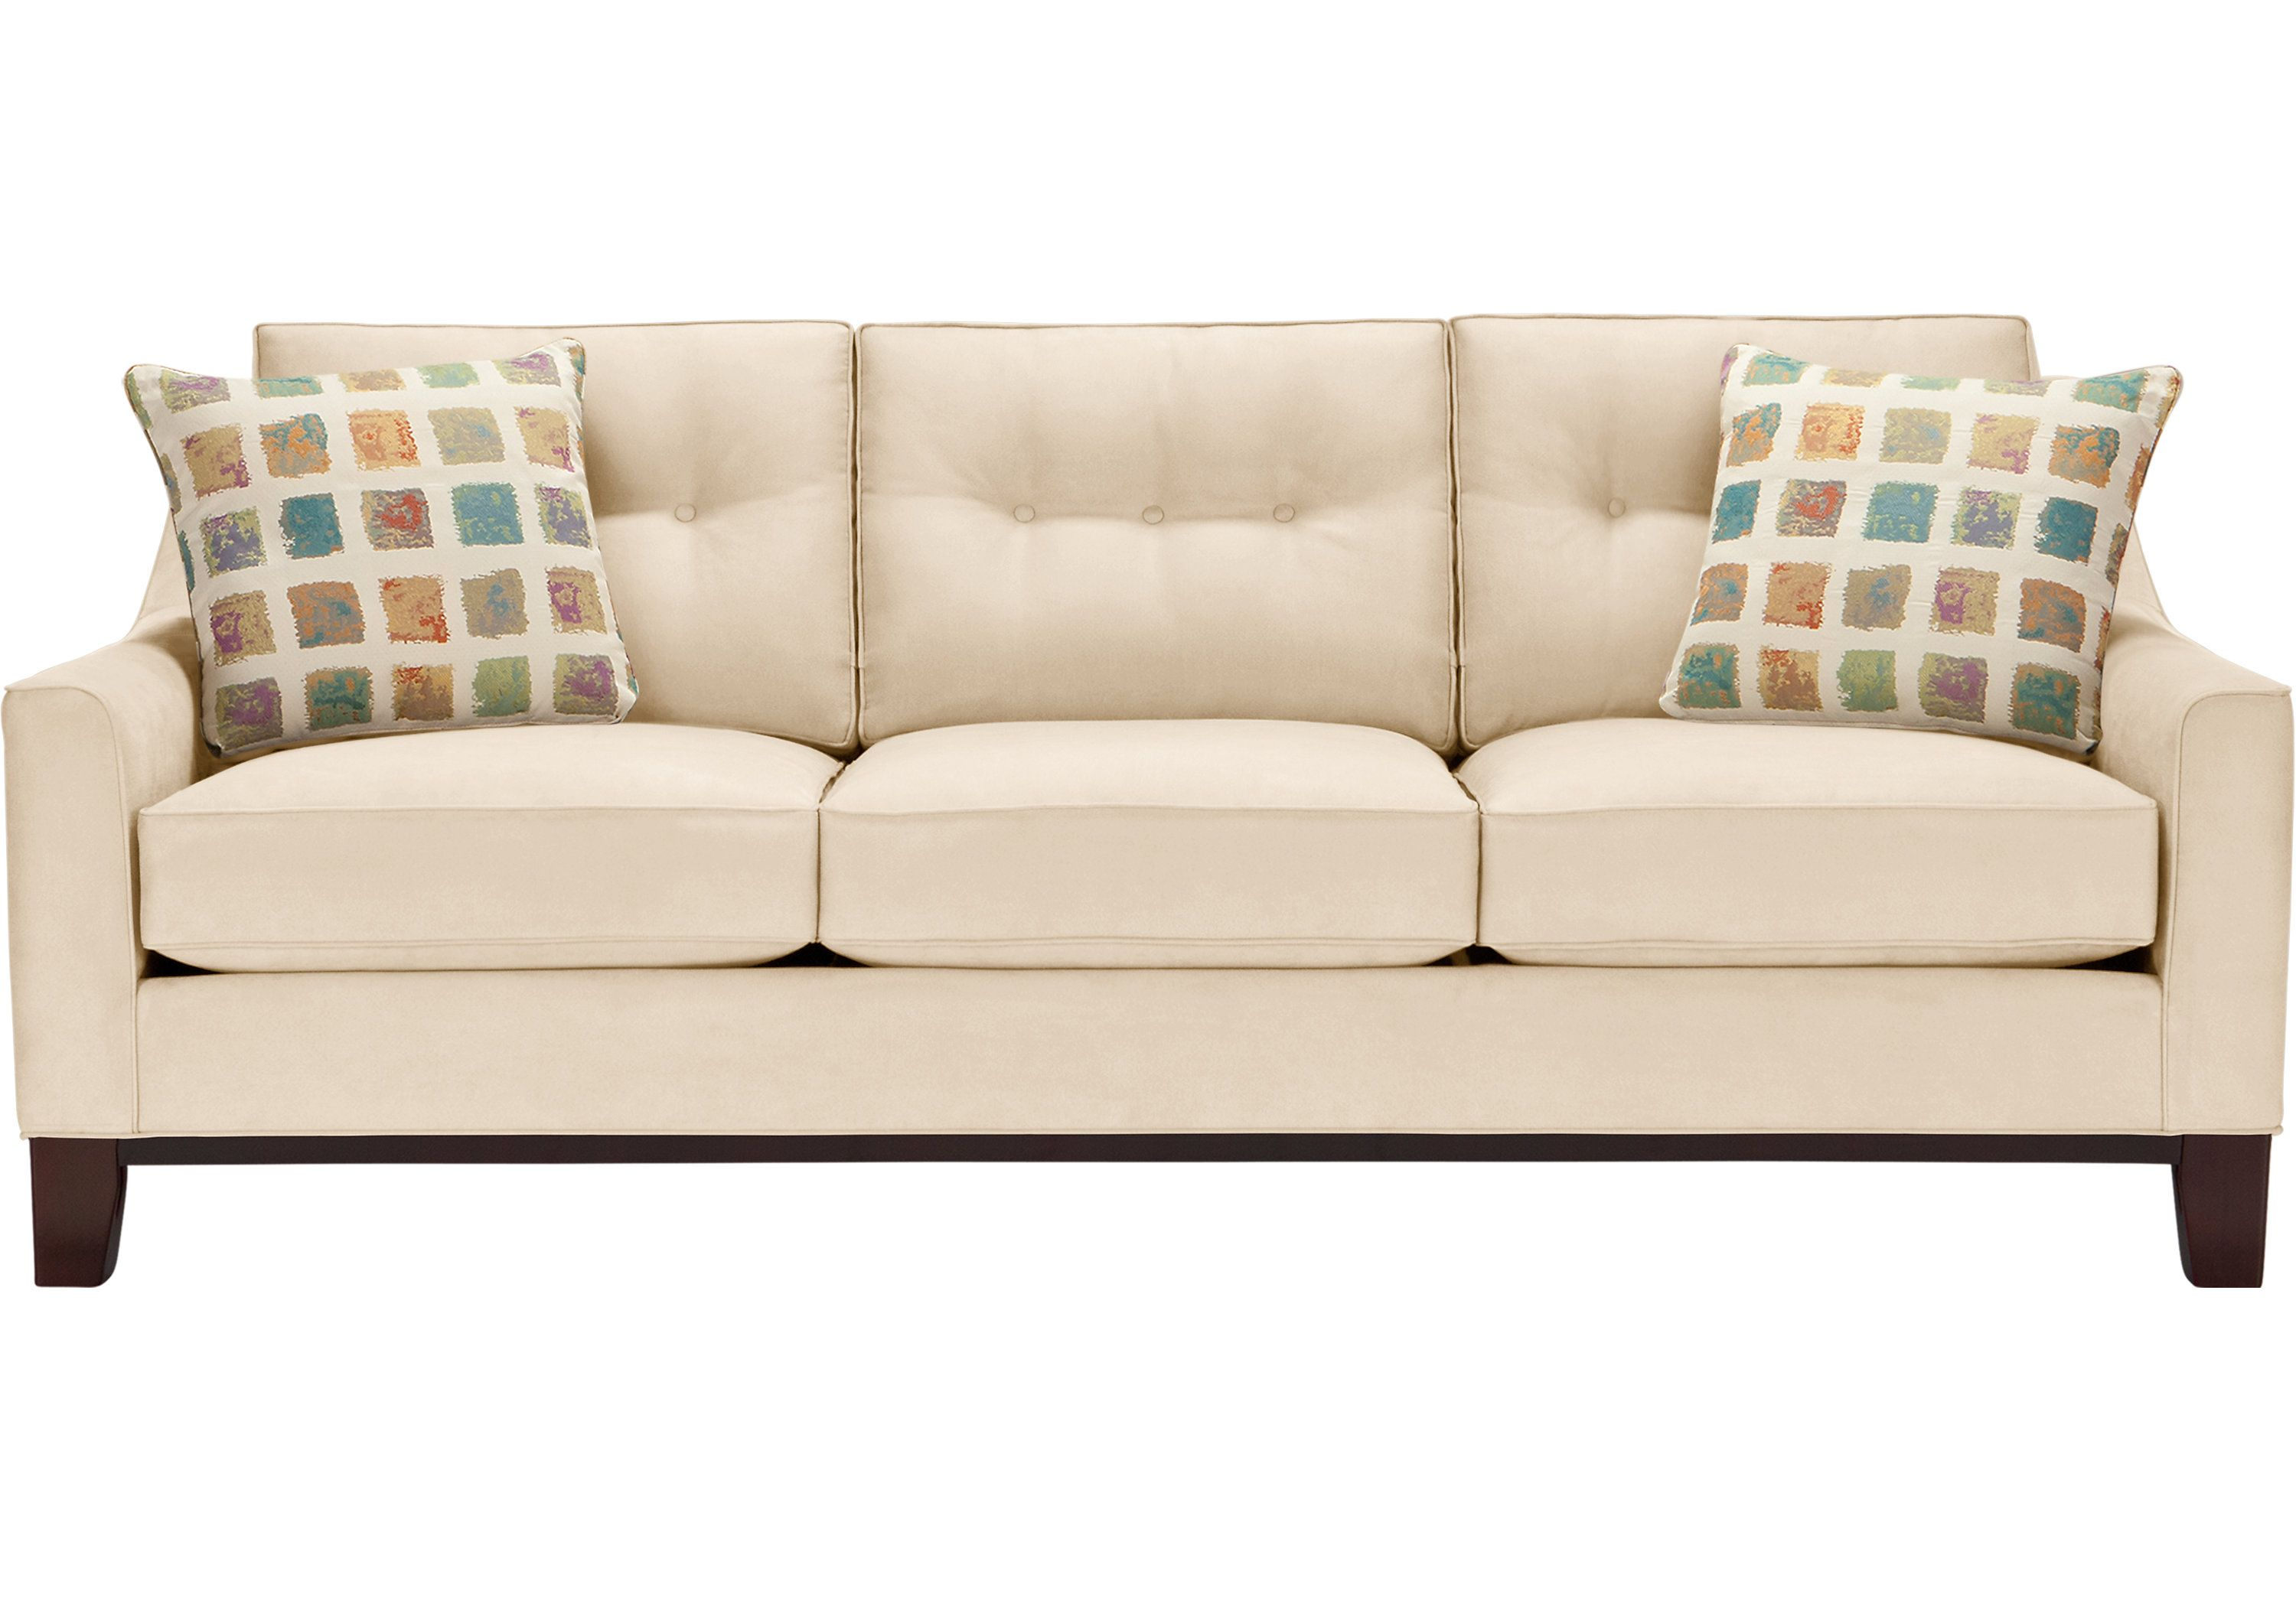 affordable sofa sectional sofas equipped velvet rectangle storage which overstock couch charcoal ottoman with sleeper